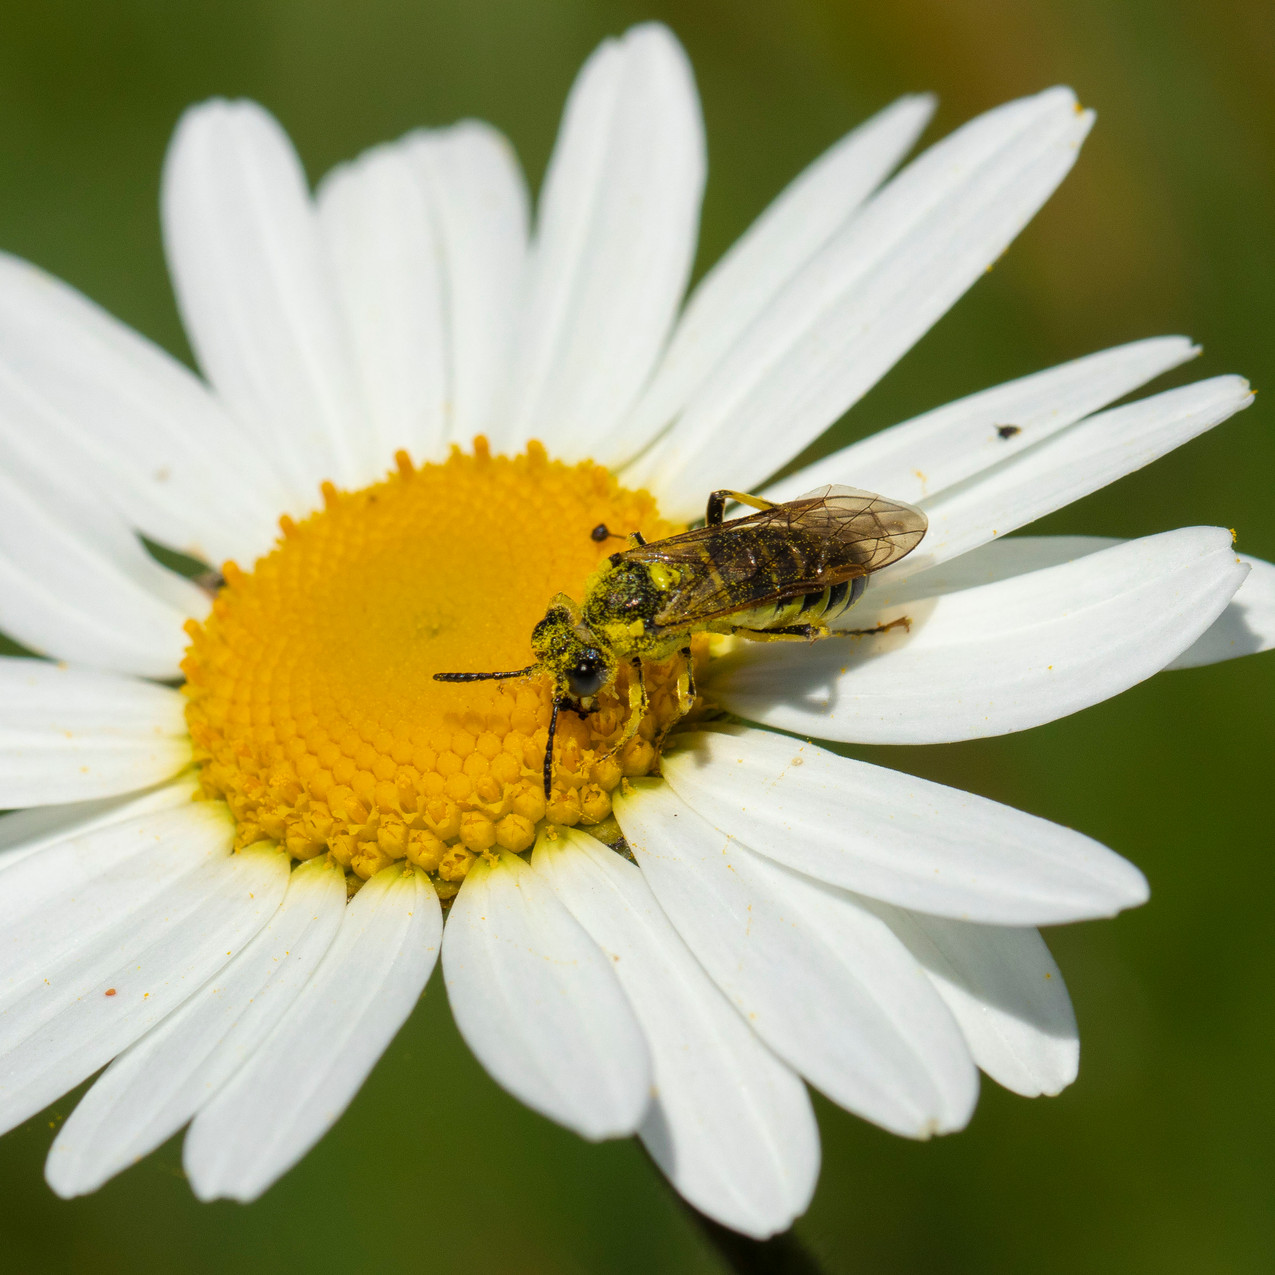 25th May 2020 _Sawfly _Hatton Meadows _0